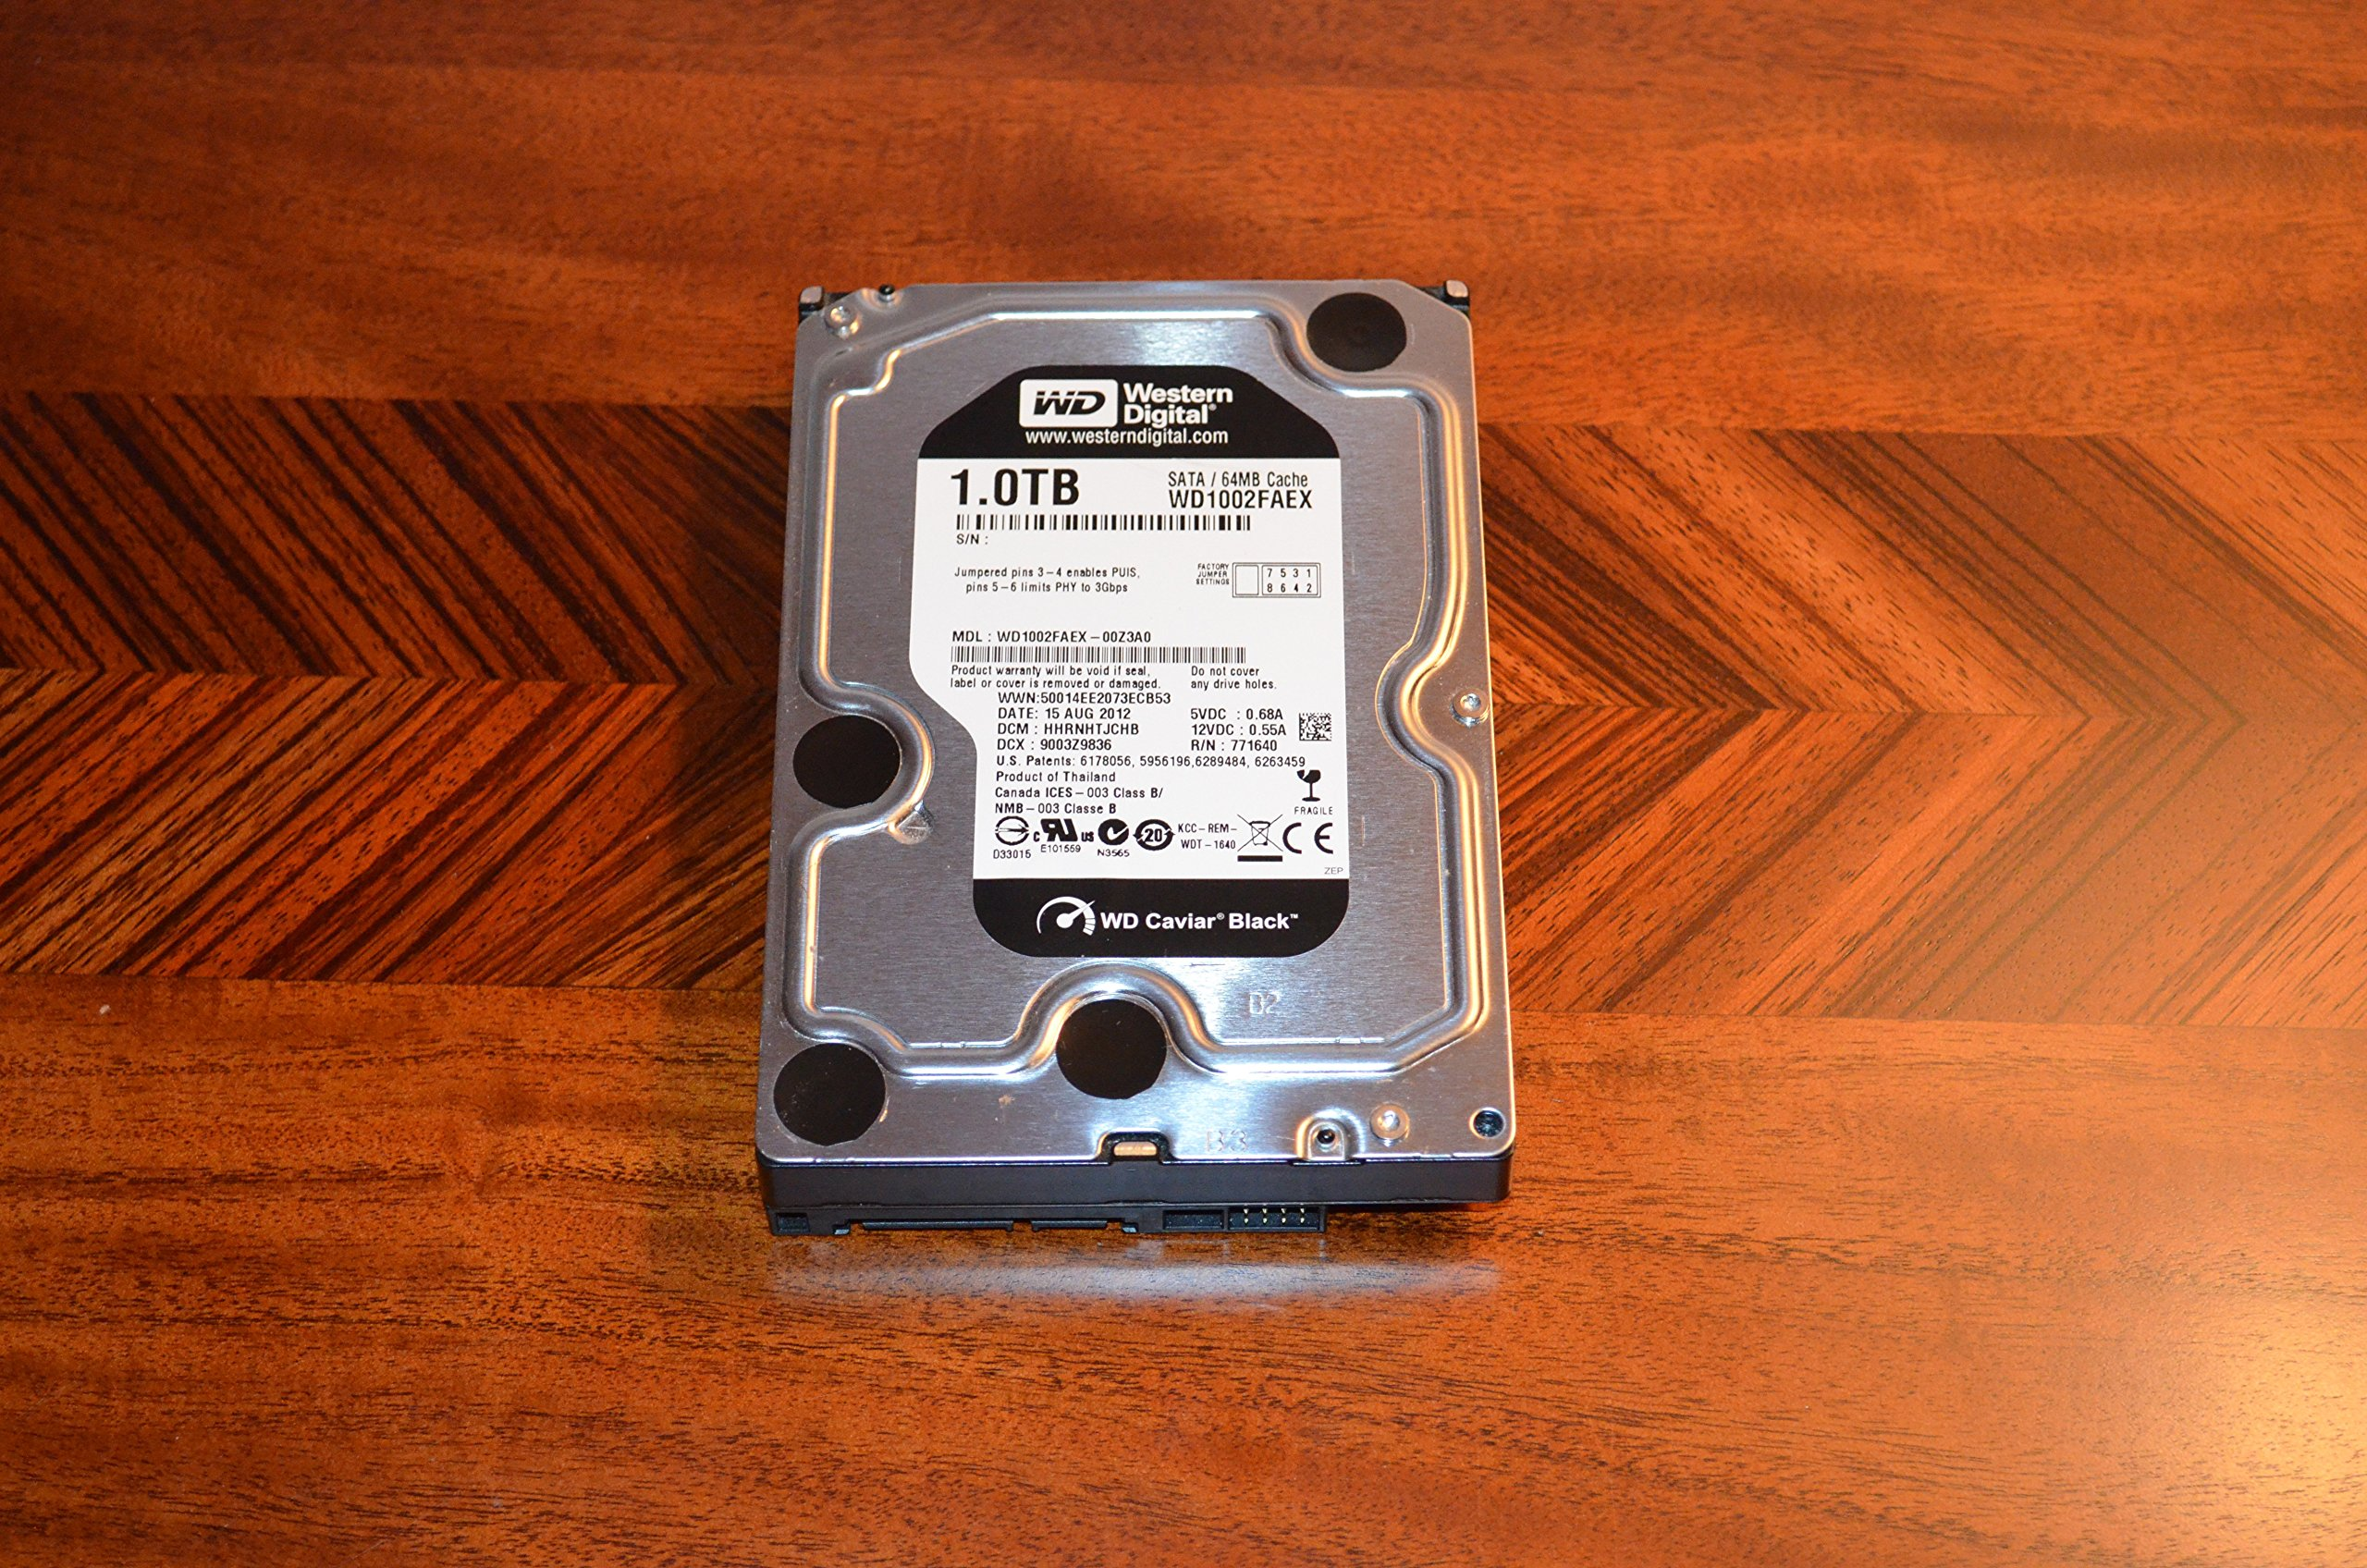 NEW - 1TB 7200RPM 64MB SATA/600, 3.5INCH, CAVIAR BLACK SERIES 2ND GEN., 5 YEAR WARRANT - WD1002FAEX by PC WHOLESALE EXCLUSIVE